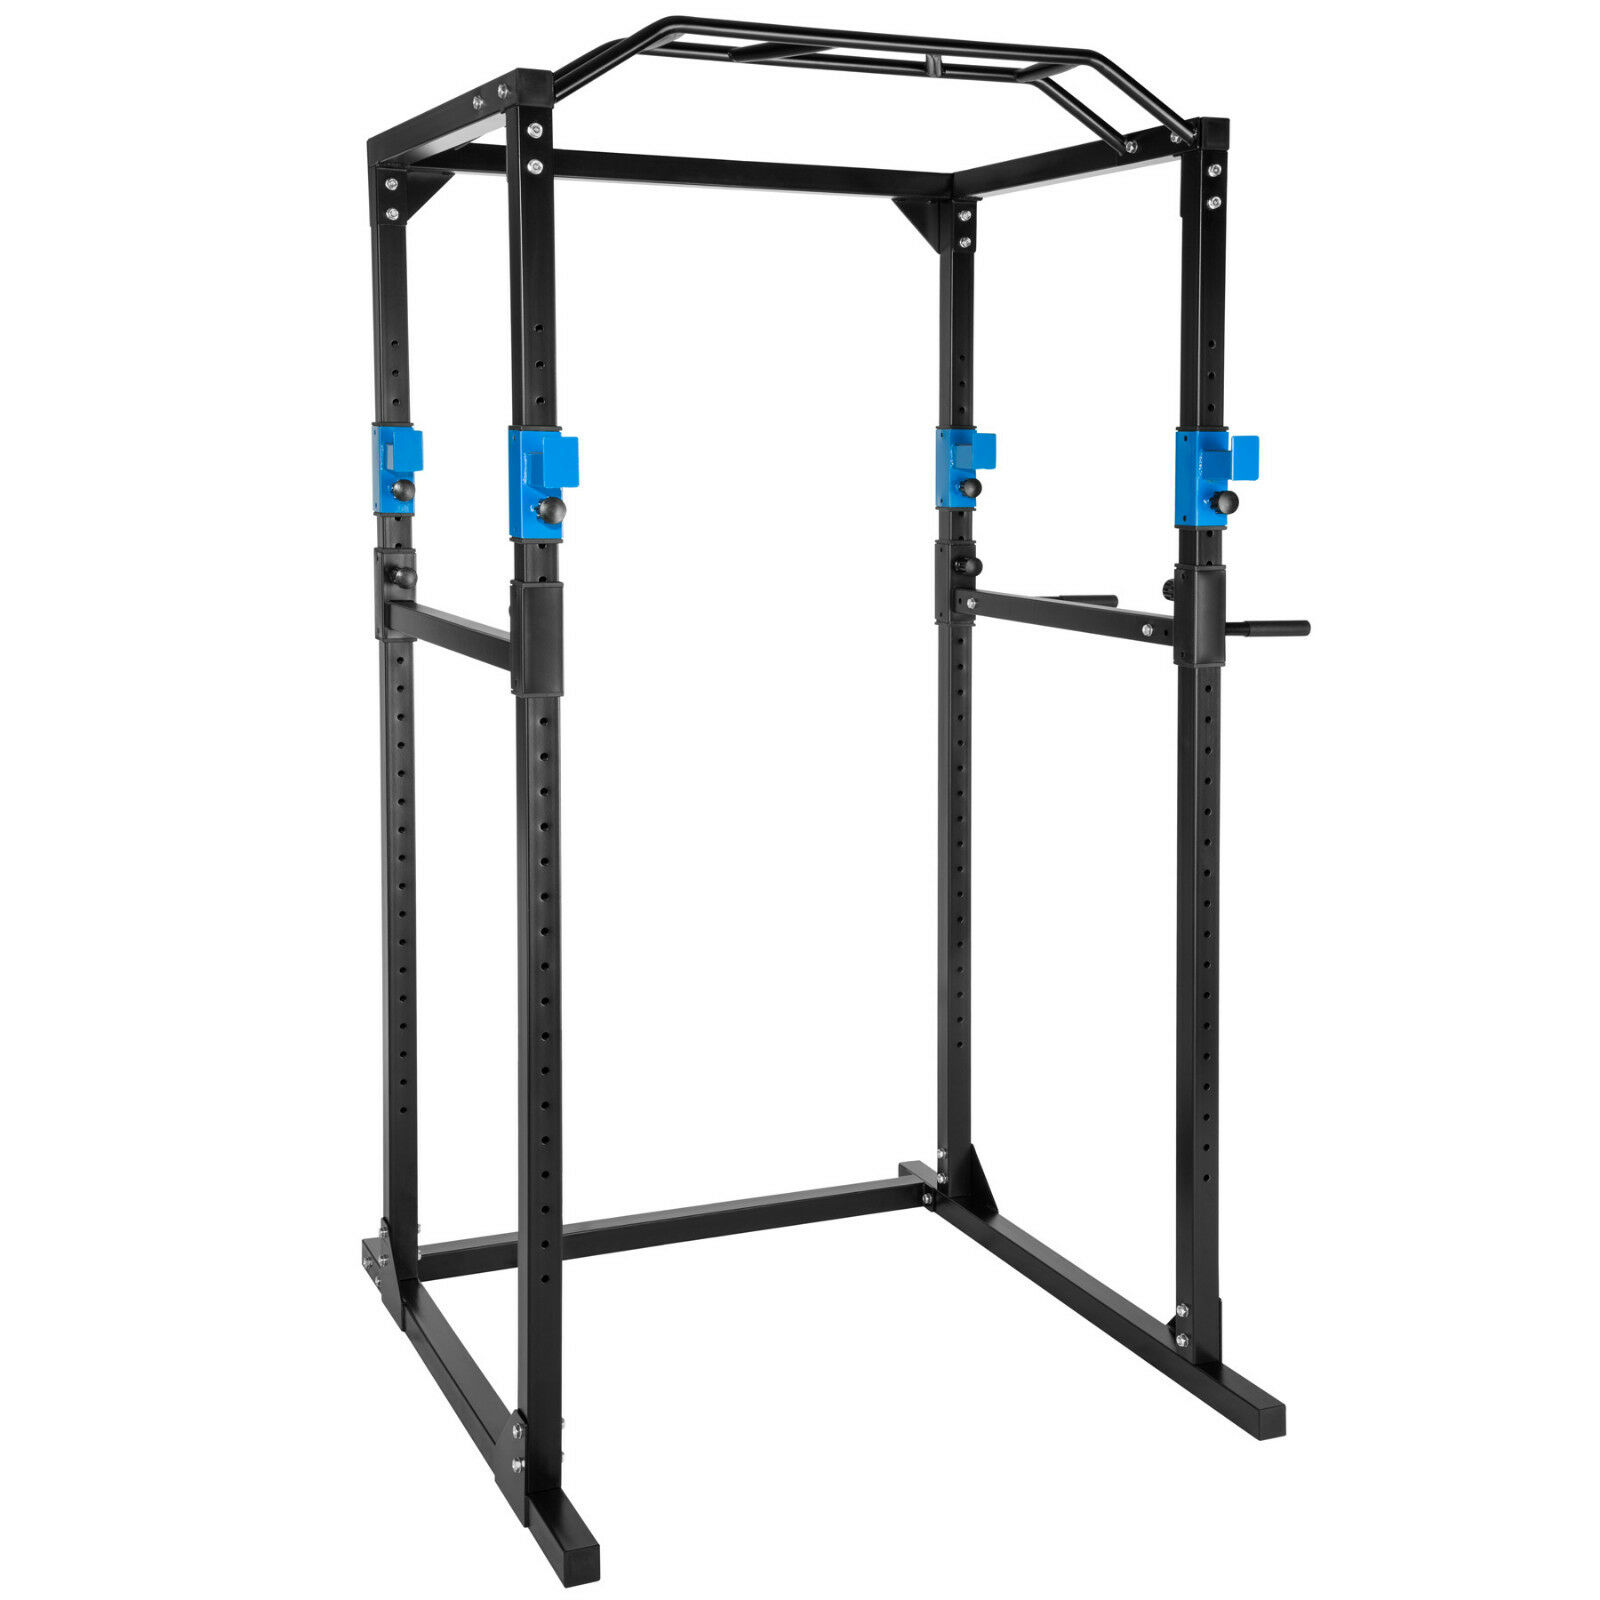 Station de musculation cage musculation dips fitness gym traction Blau schwarz